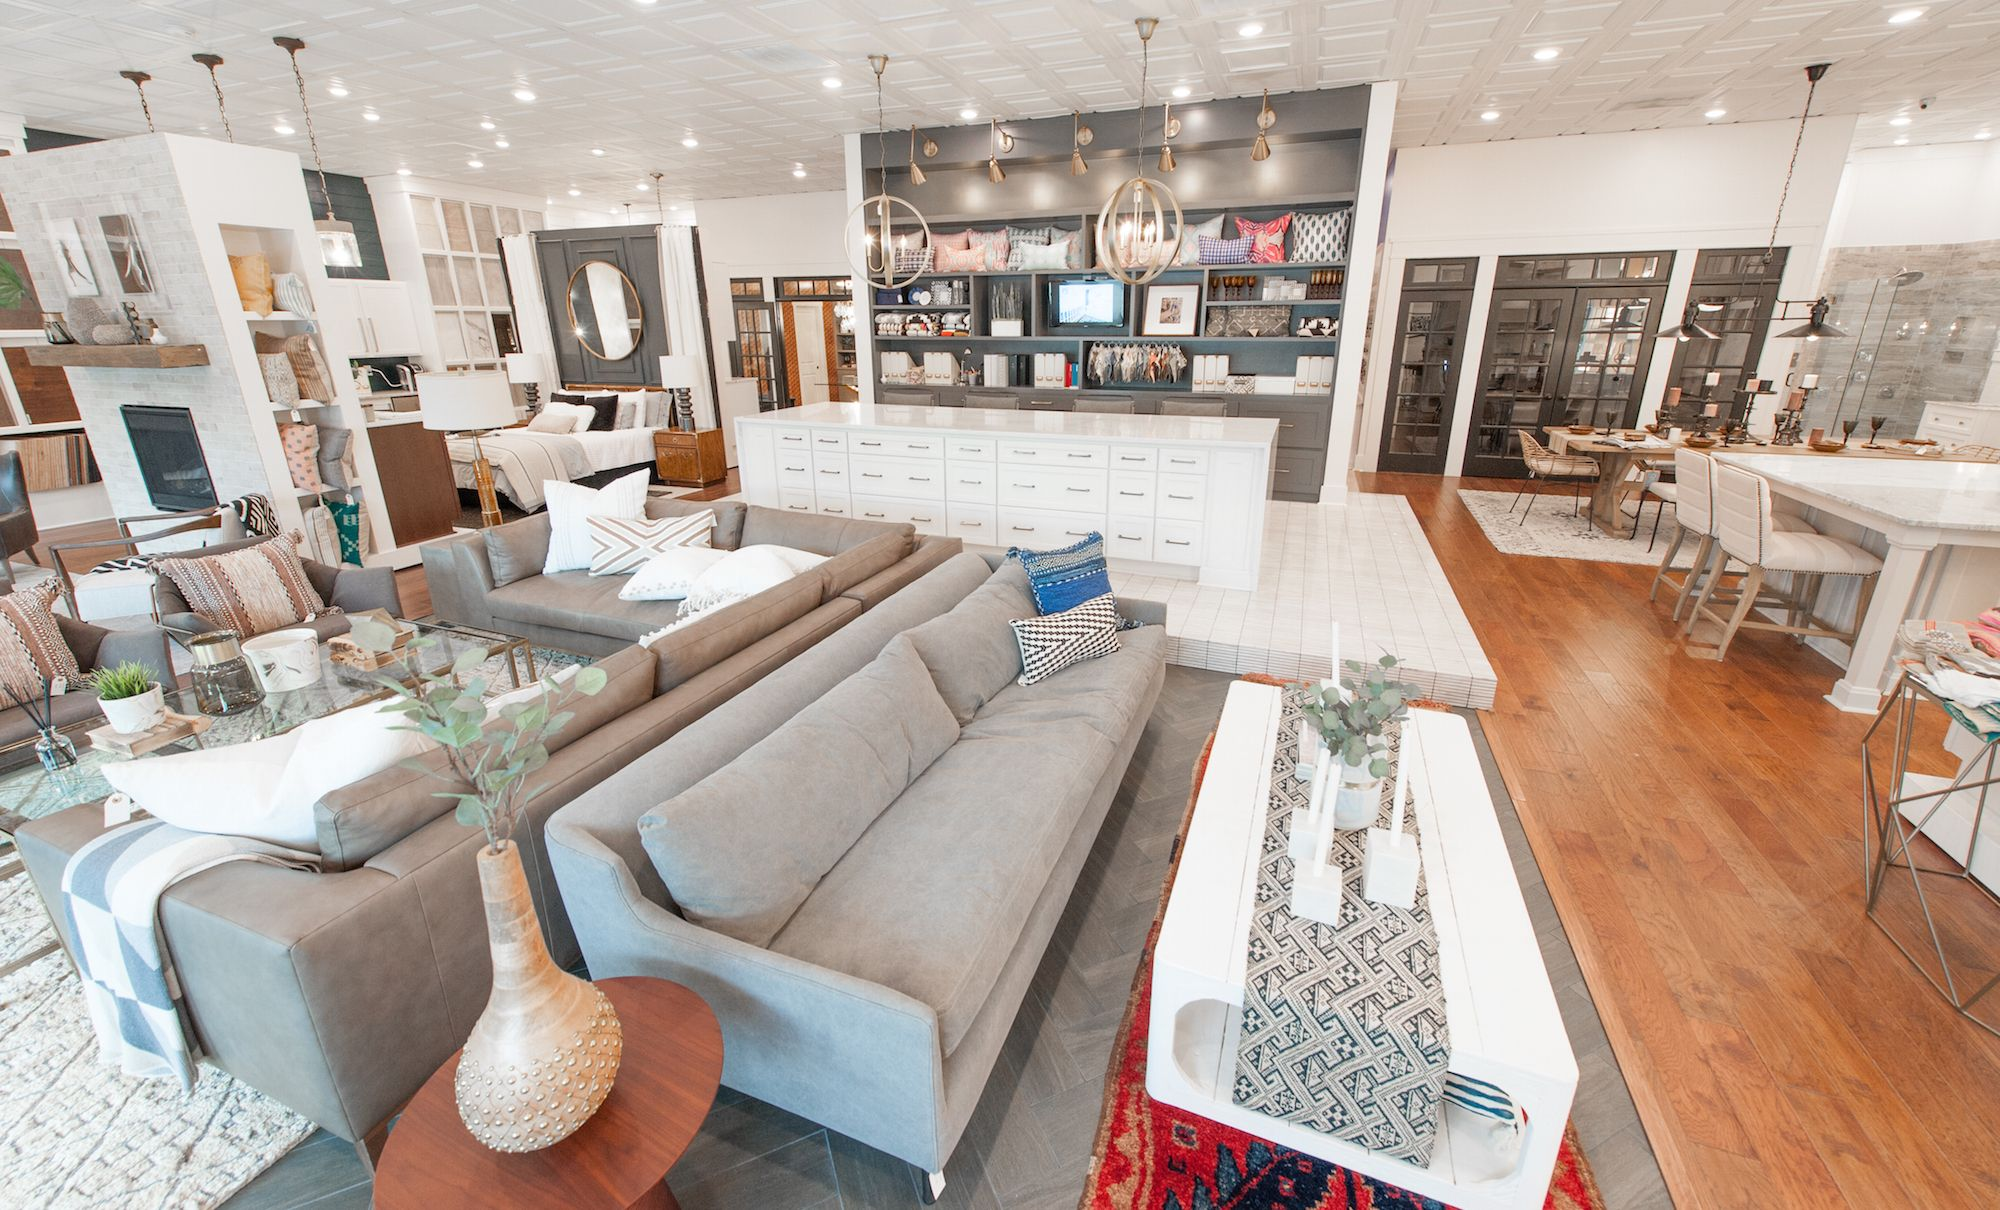 Introducing the design collective in mt pleasant for Jlv creative interior design